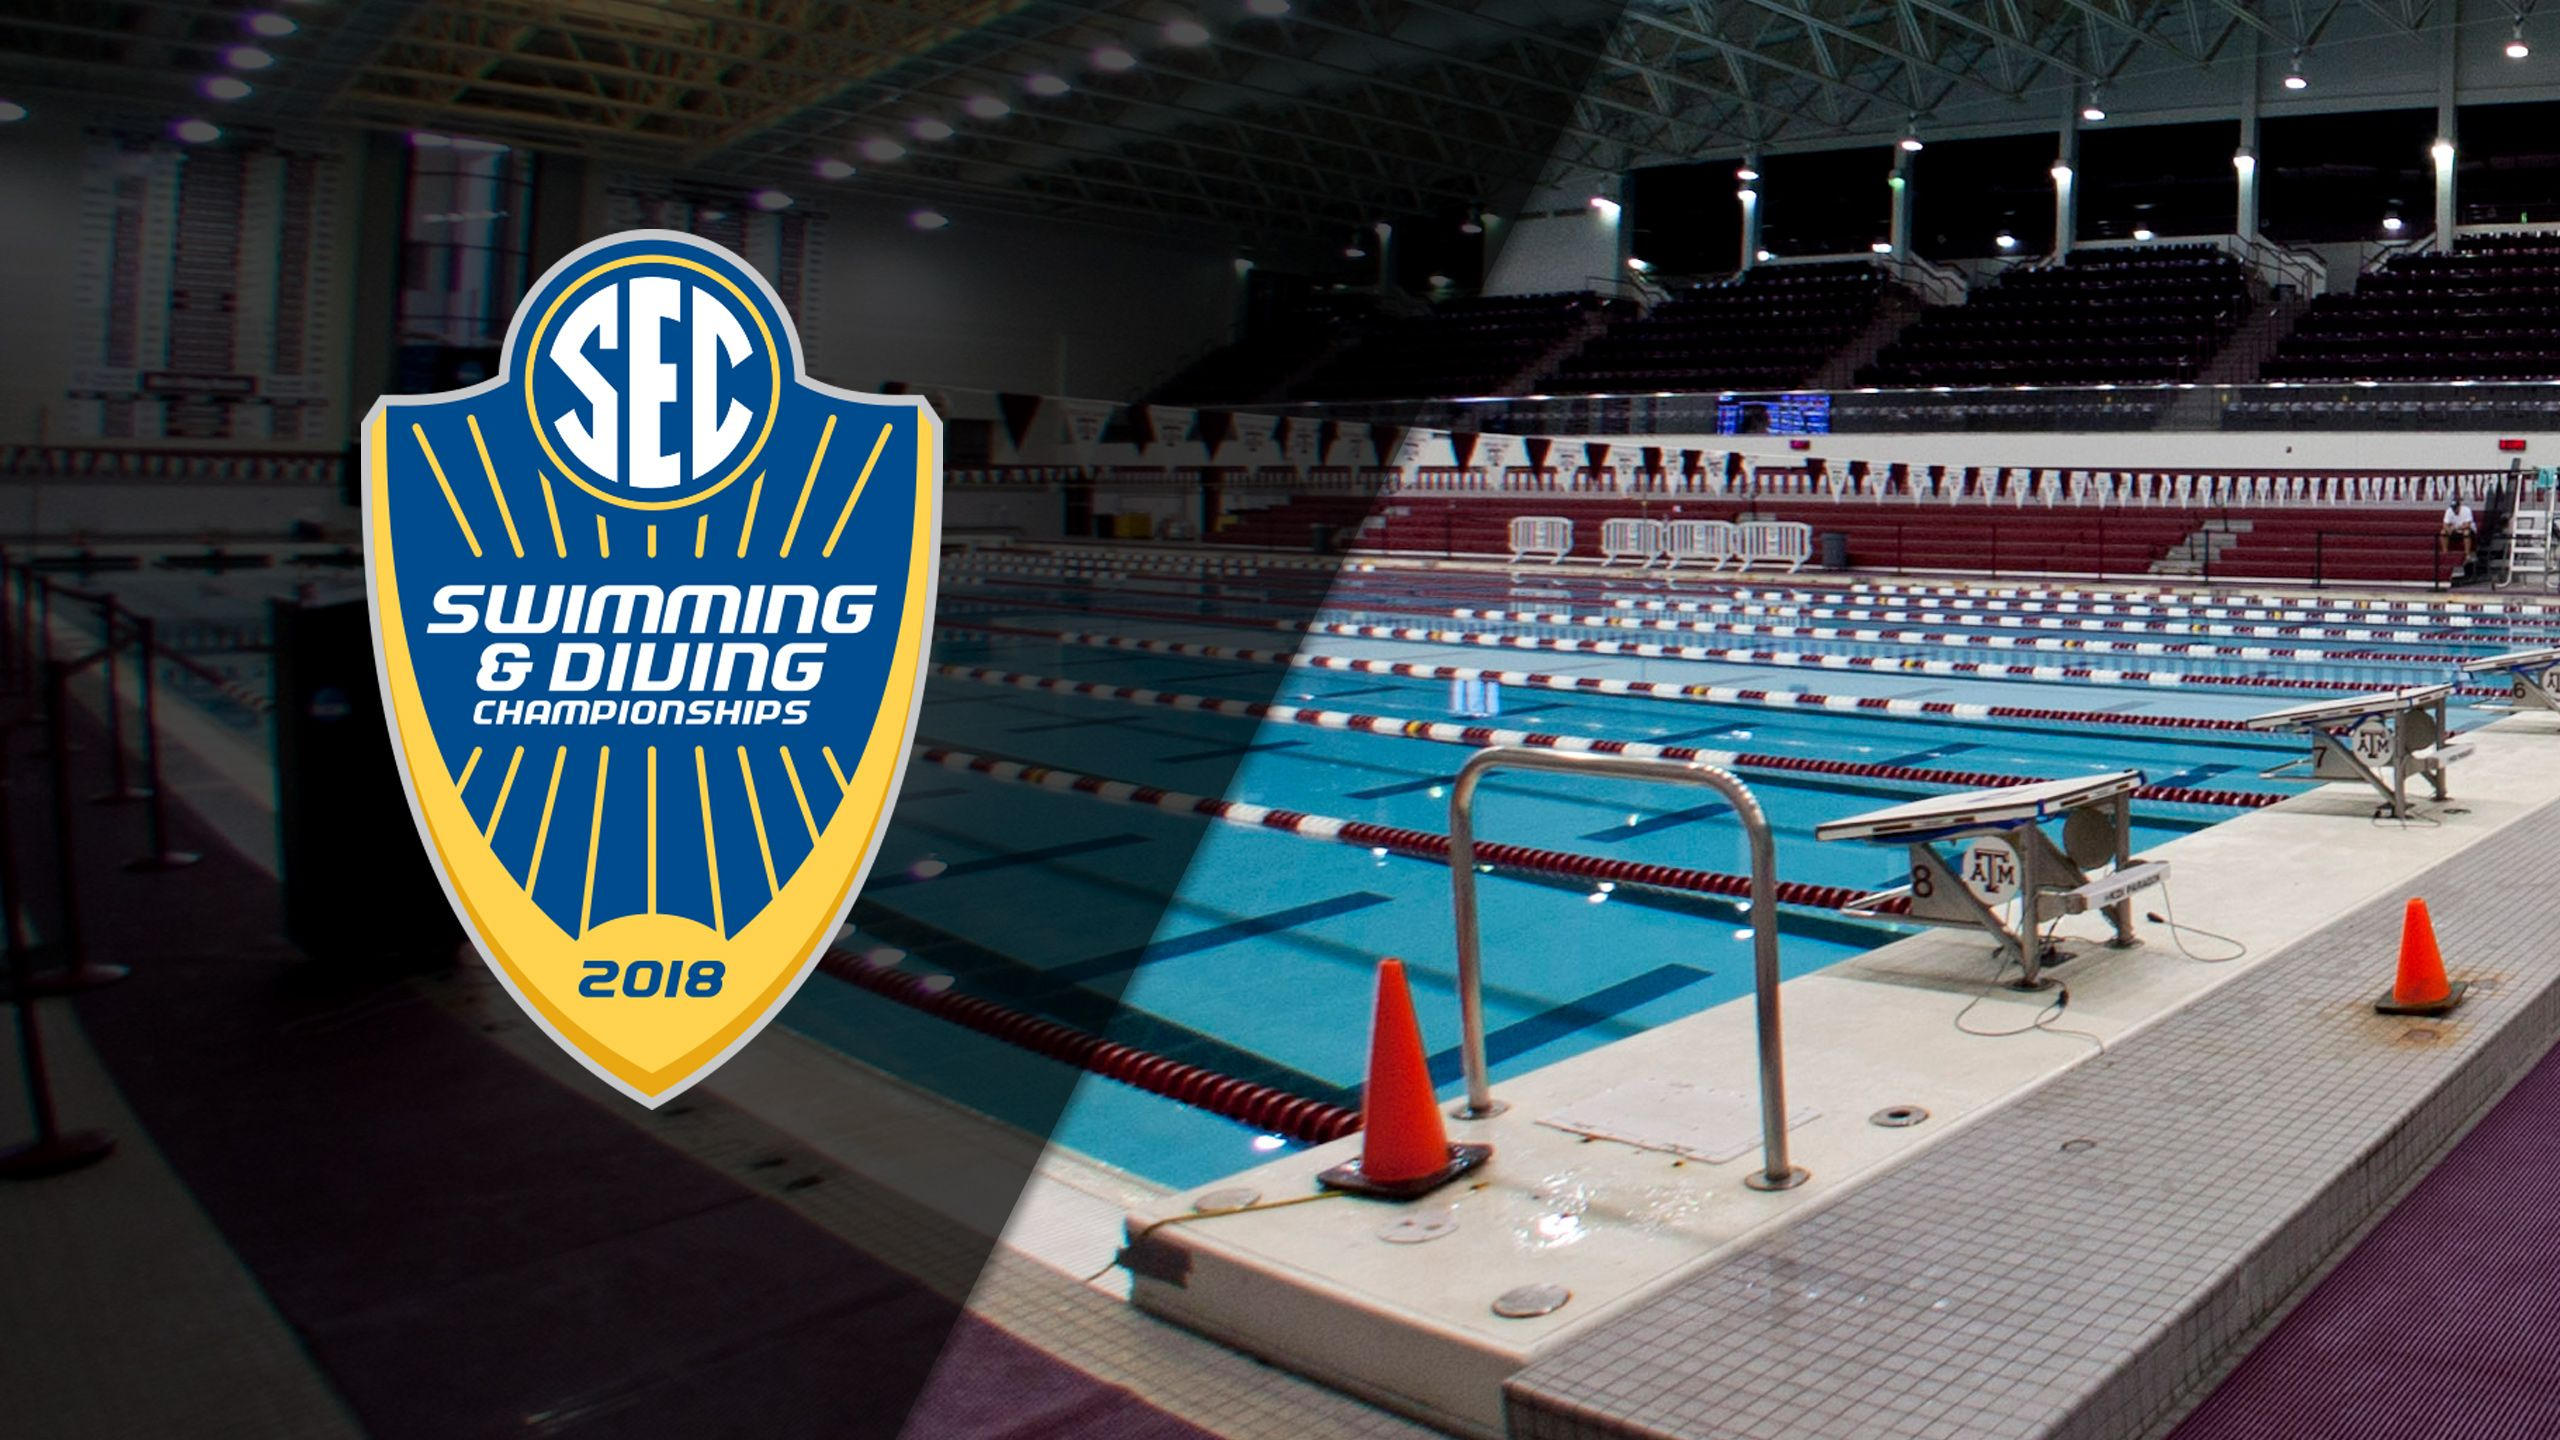 2018 SEC Swimming & Diving Championships